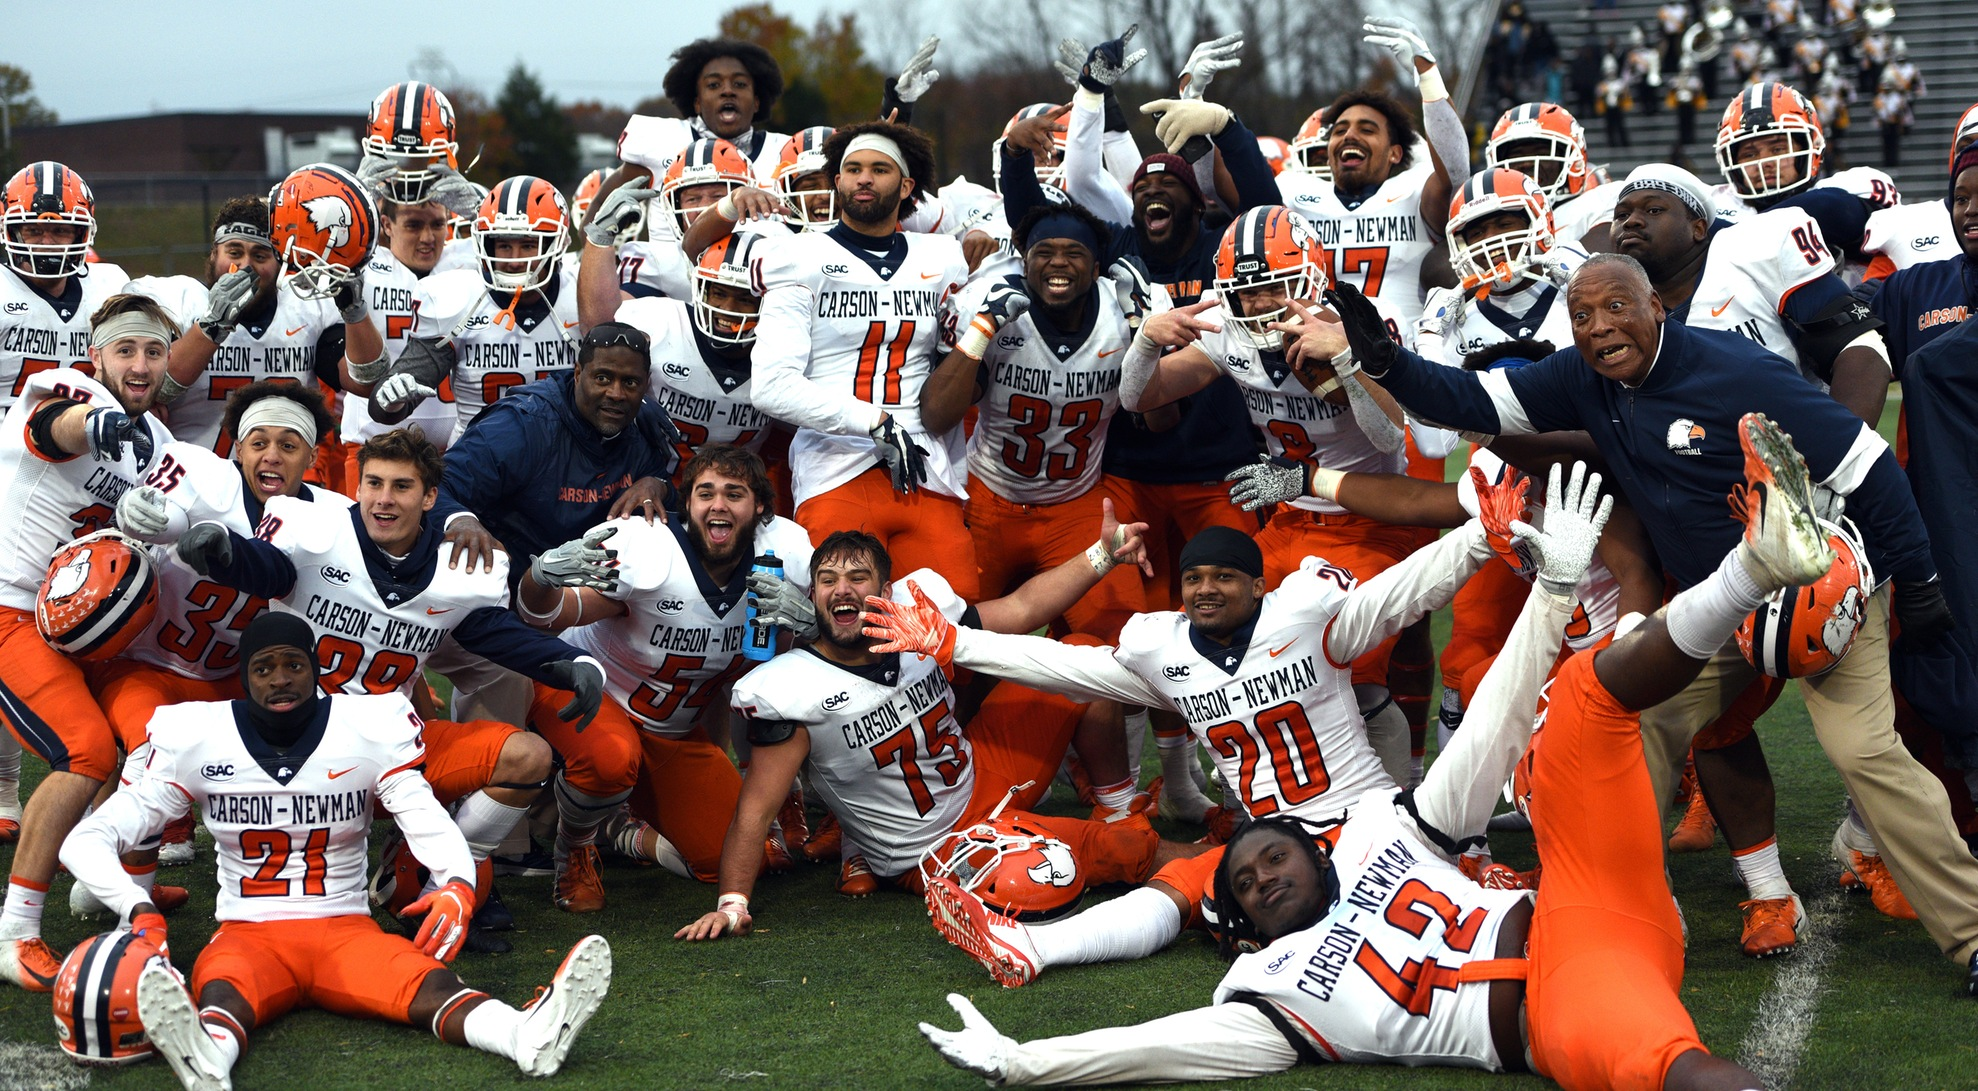 Stout defense carries No. 24 Carson-Newman into second round, 17-9 over No. 11 Bowie State